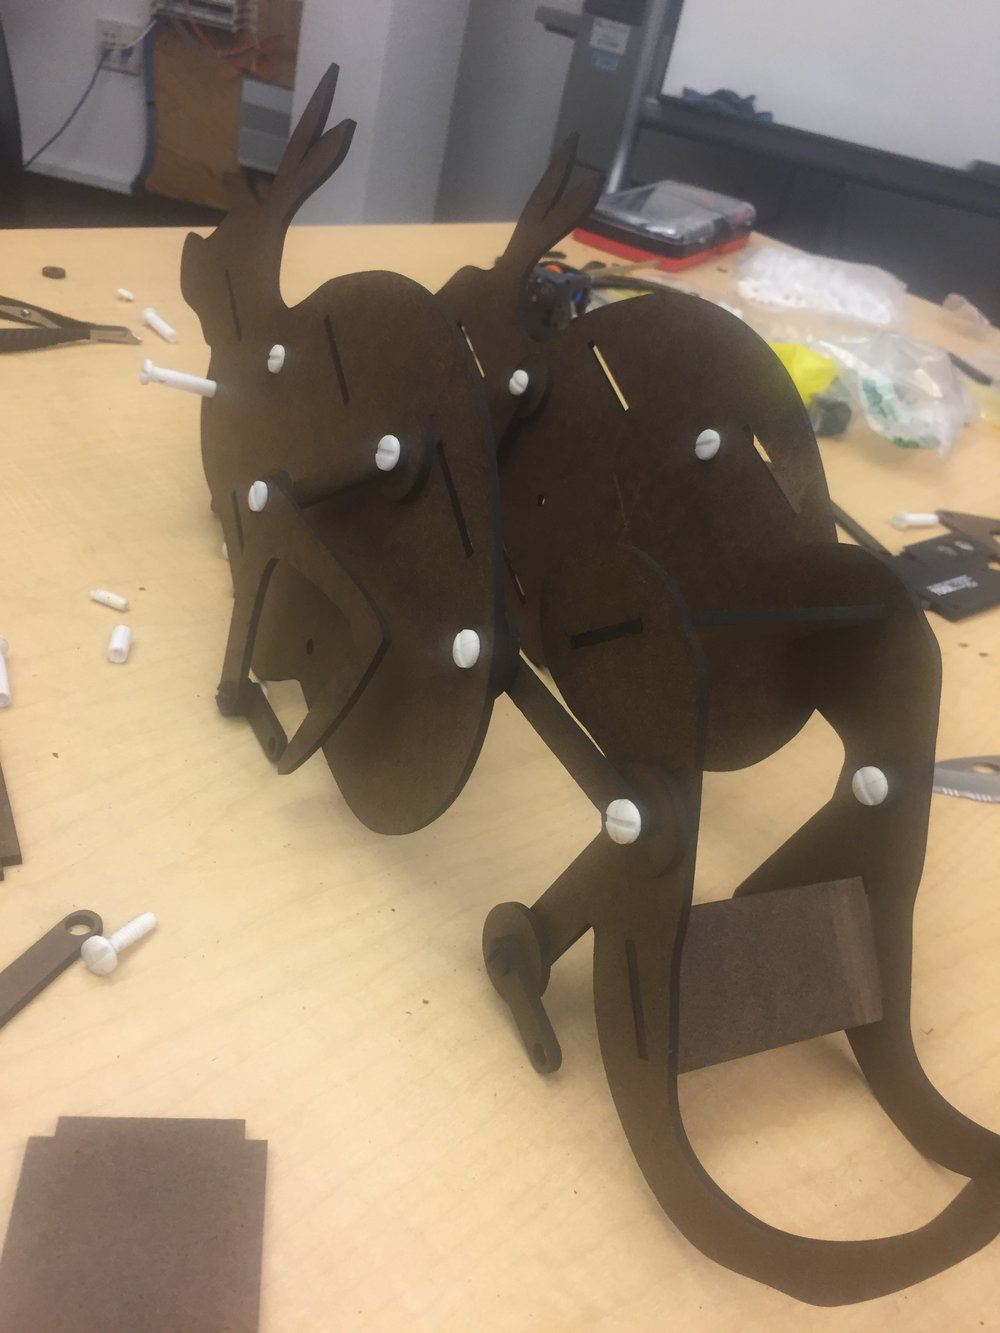 Assembling the kangaroo body. Made from laser cut duron and plastic axle pieces.